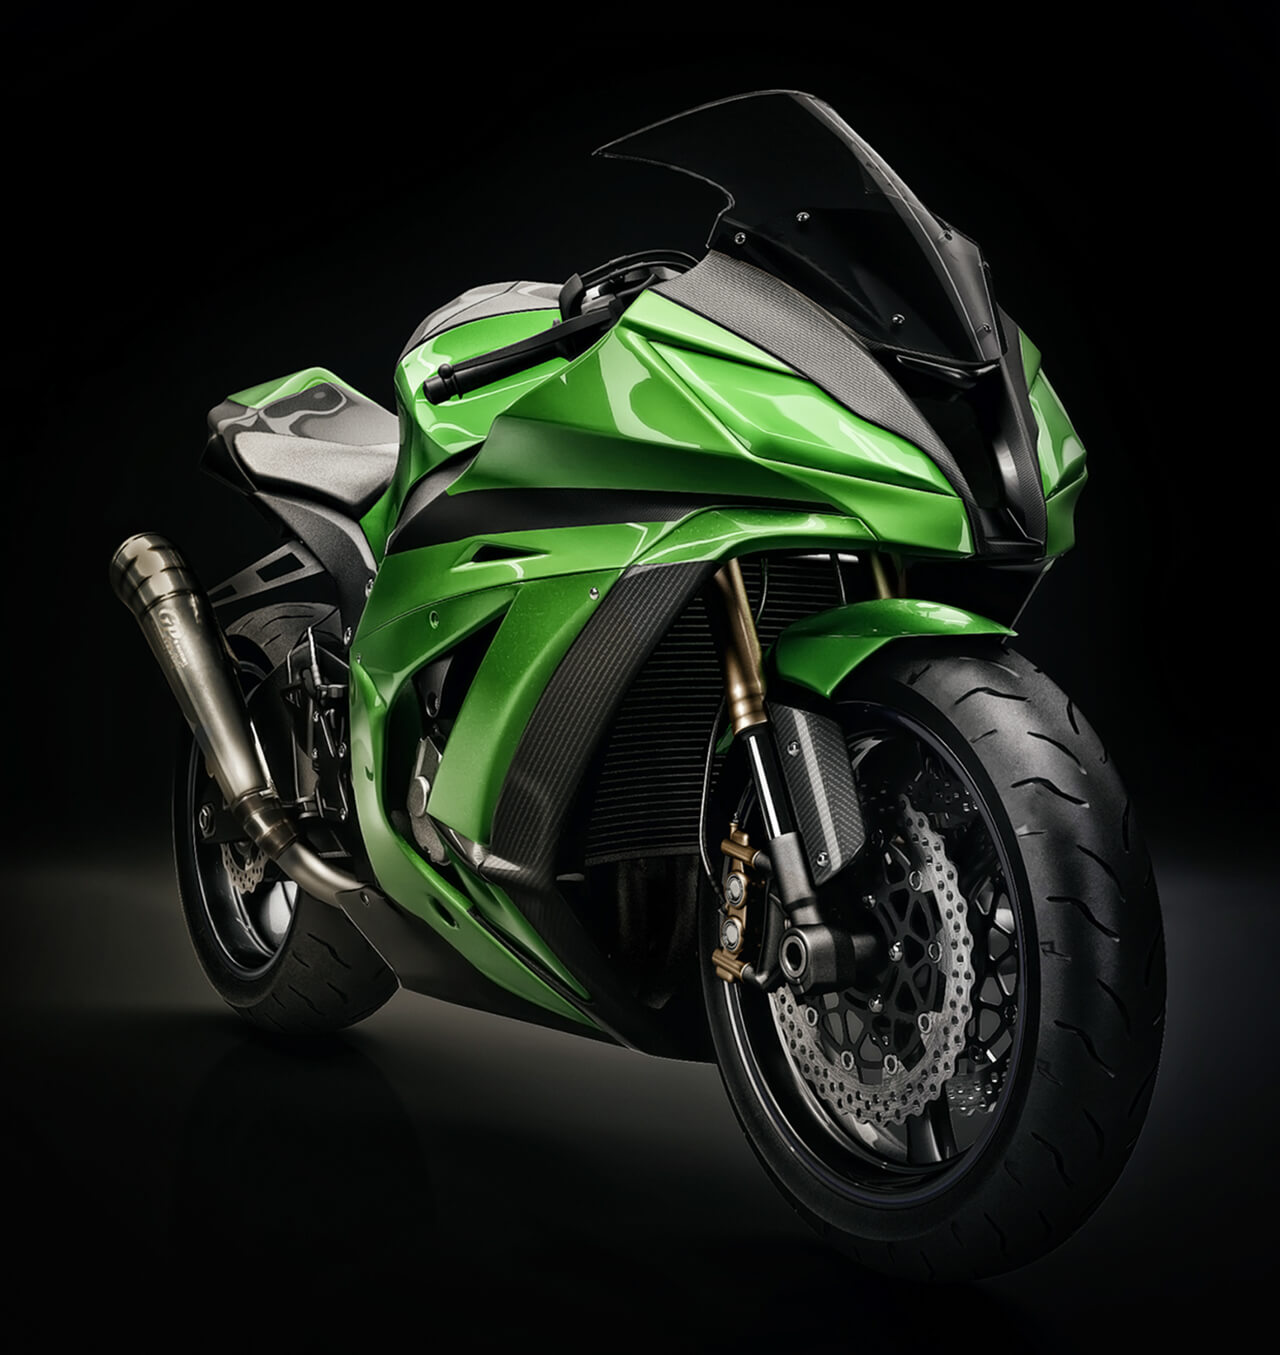 Computer generated image of a racing bike painted in green and black